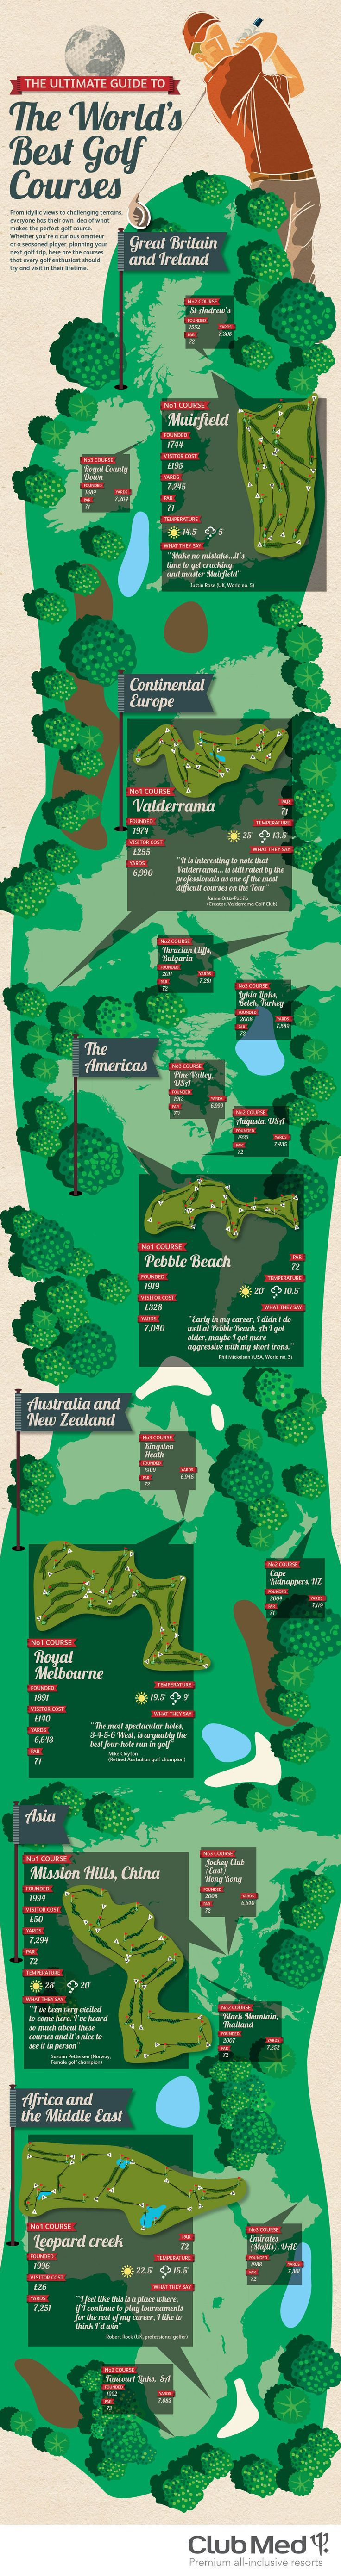 The Ultimate Guide to the Worlds Best Golf Courses